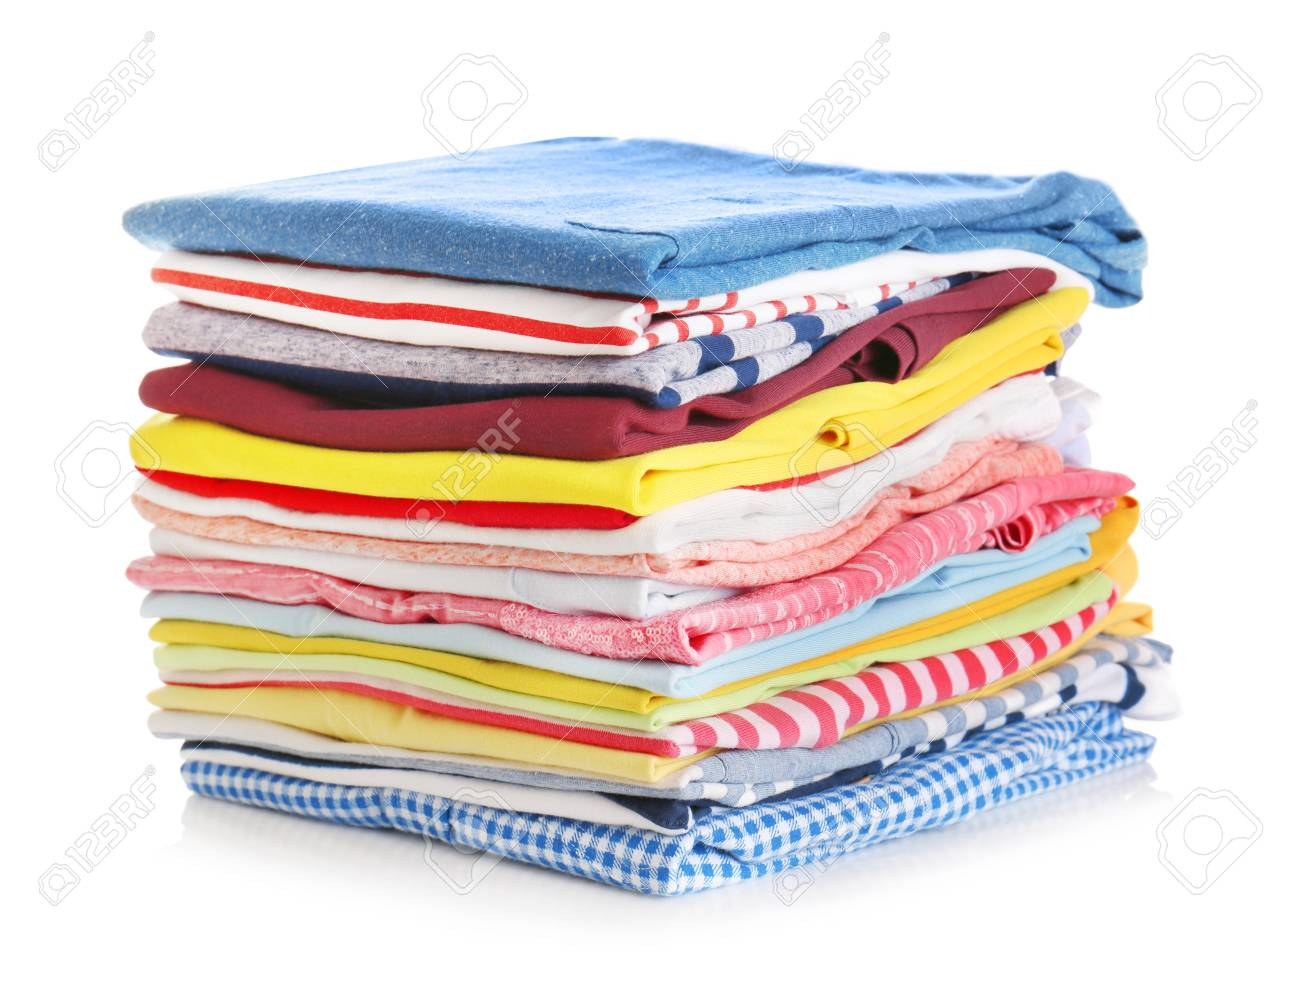 Stack of colorful clothes on white background, closeup - 97368882